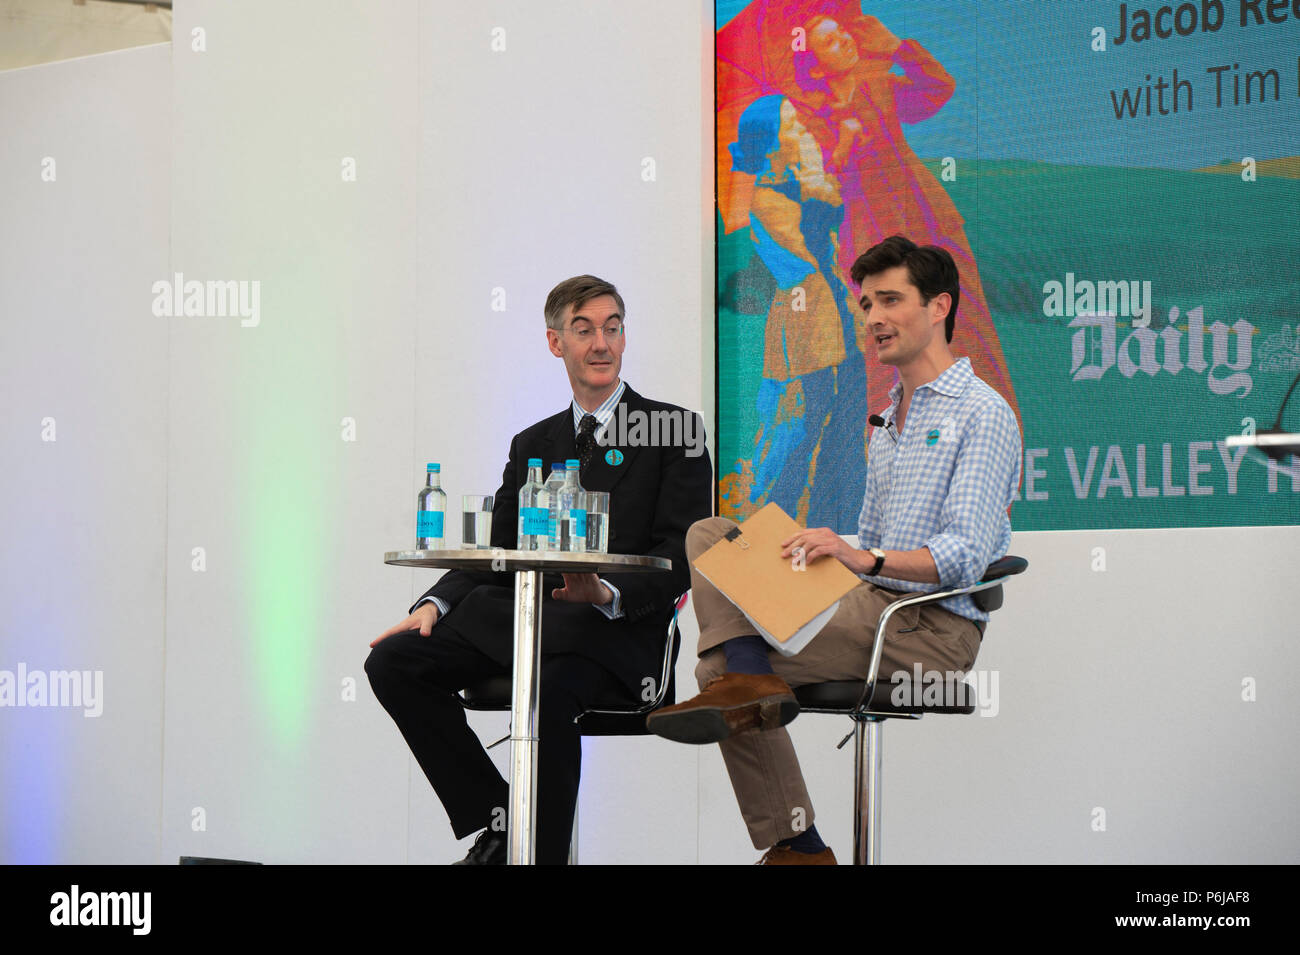 Chalke Valley, Wiltshire,  UK, 30 June 2018, Jacob Rees-Mogg talks about Politics and History at the Chalke Valley History Festival, Guy Peterson/Alamy Live News - Stock Image